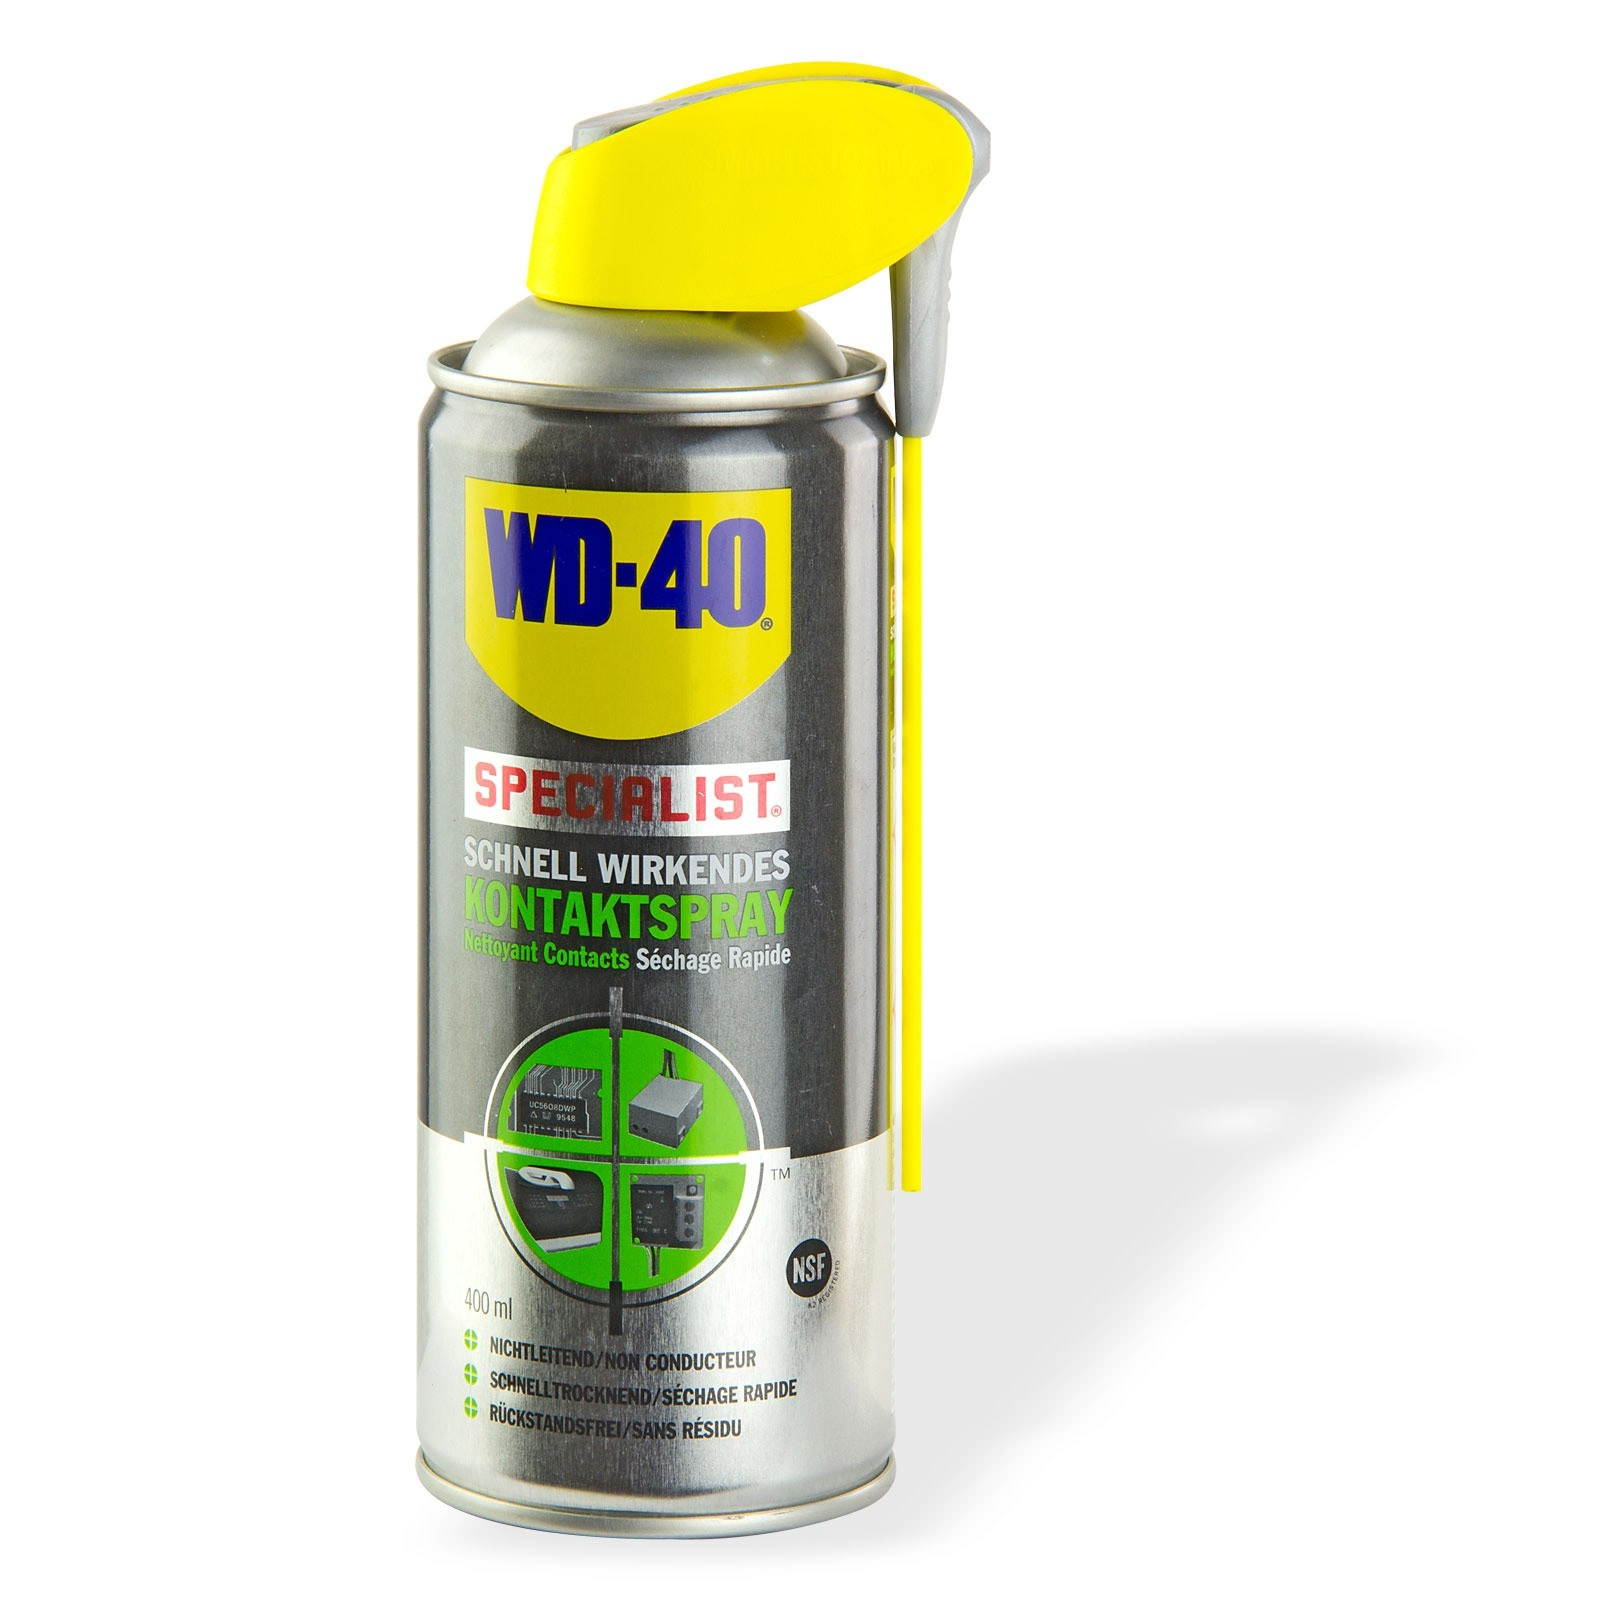 WD 40 WD-40 Kontaktspray 400 ml Kontaktreiniger Kontakt Spray 21148